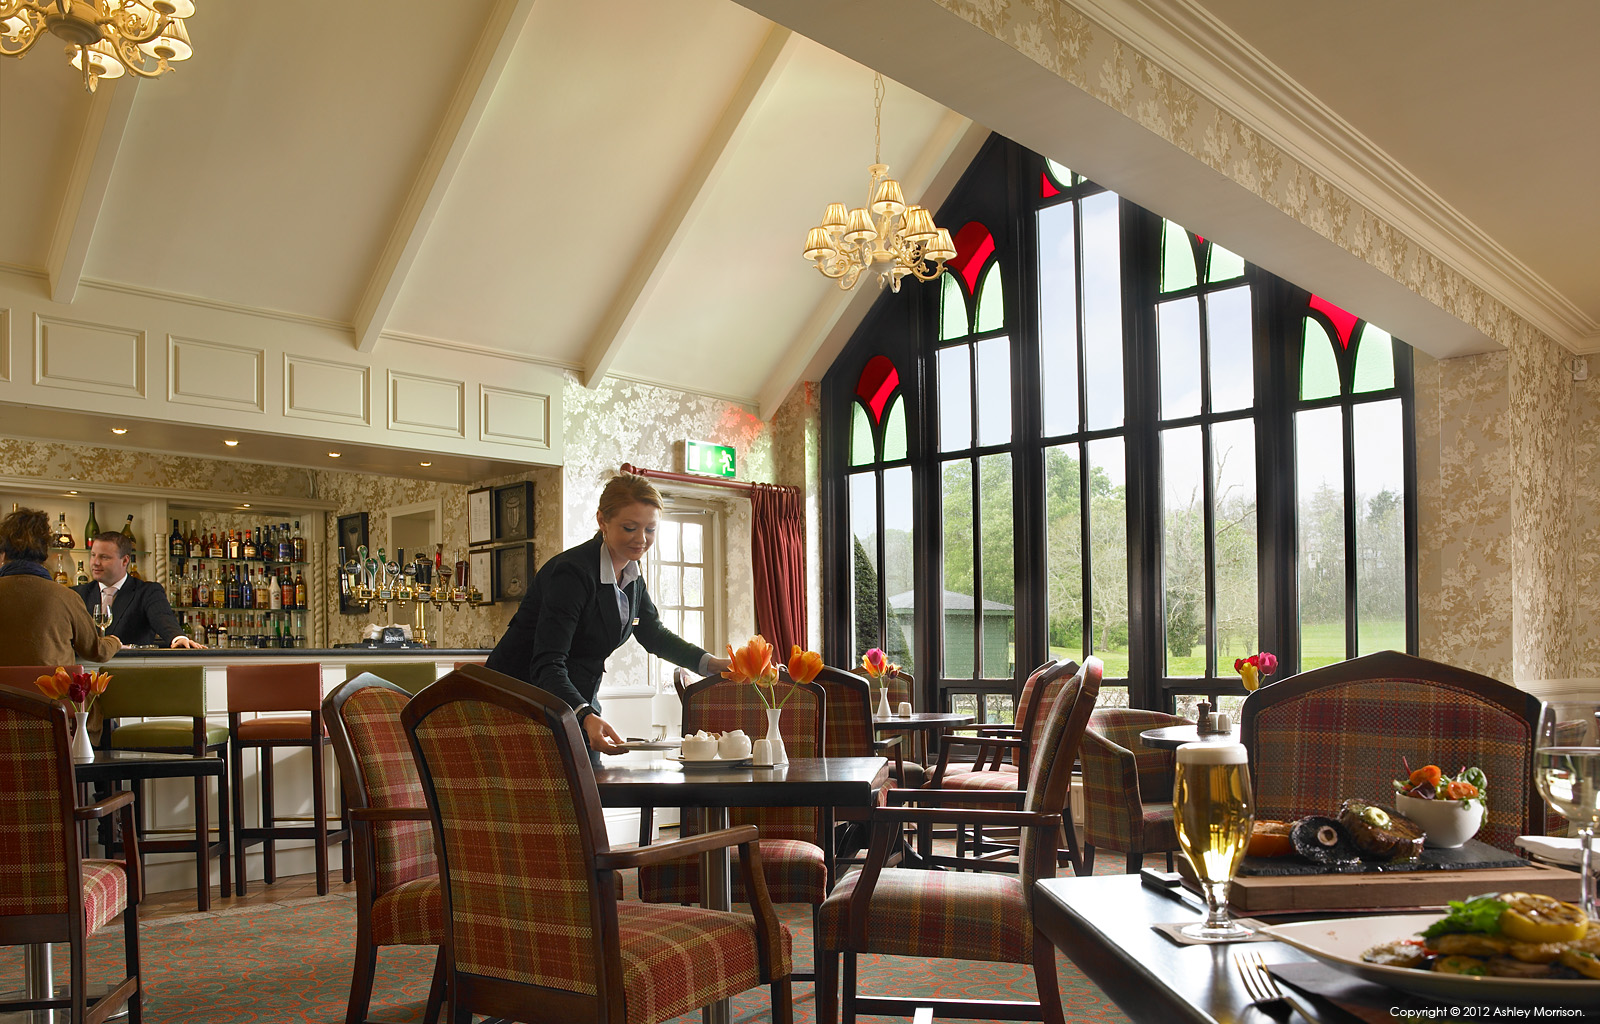 The Fig Tree restaurant in the Club House at Dromoland Castle in County Clare.